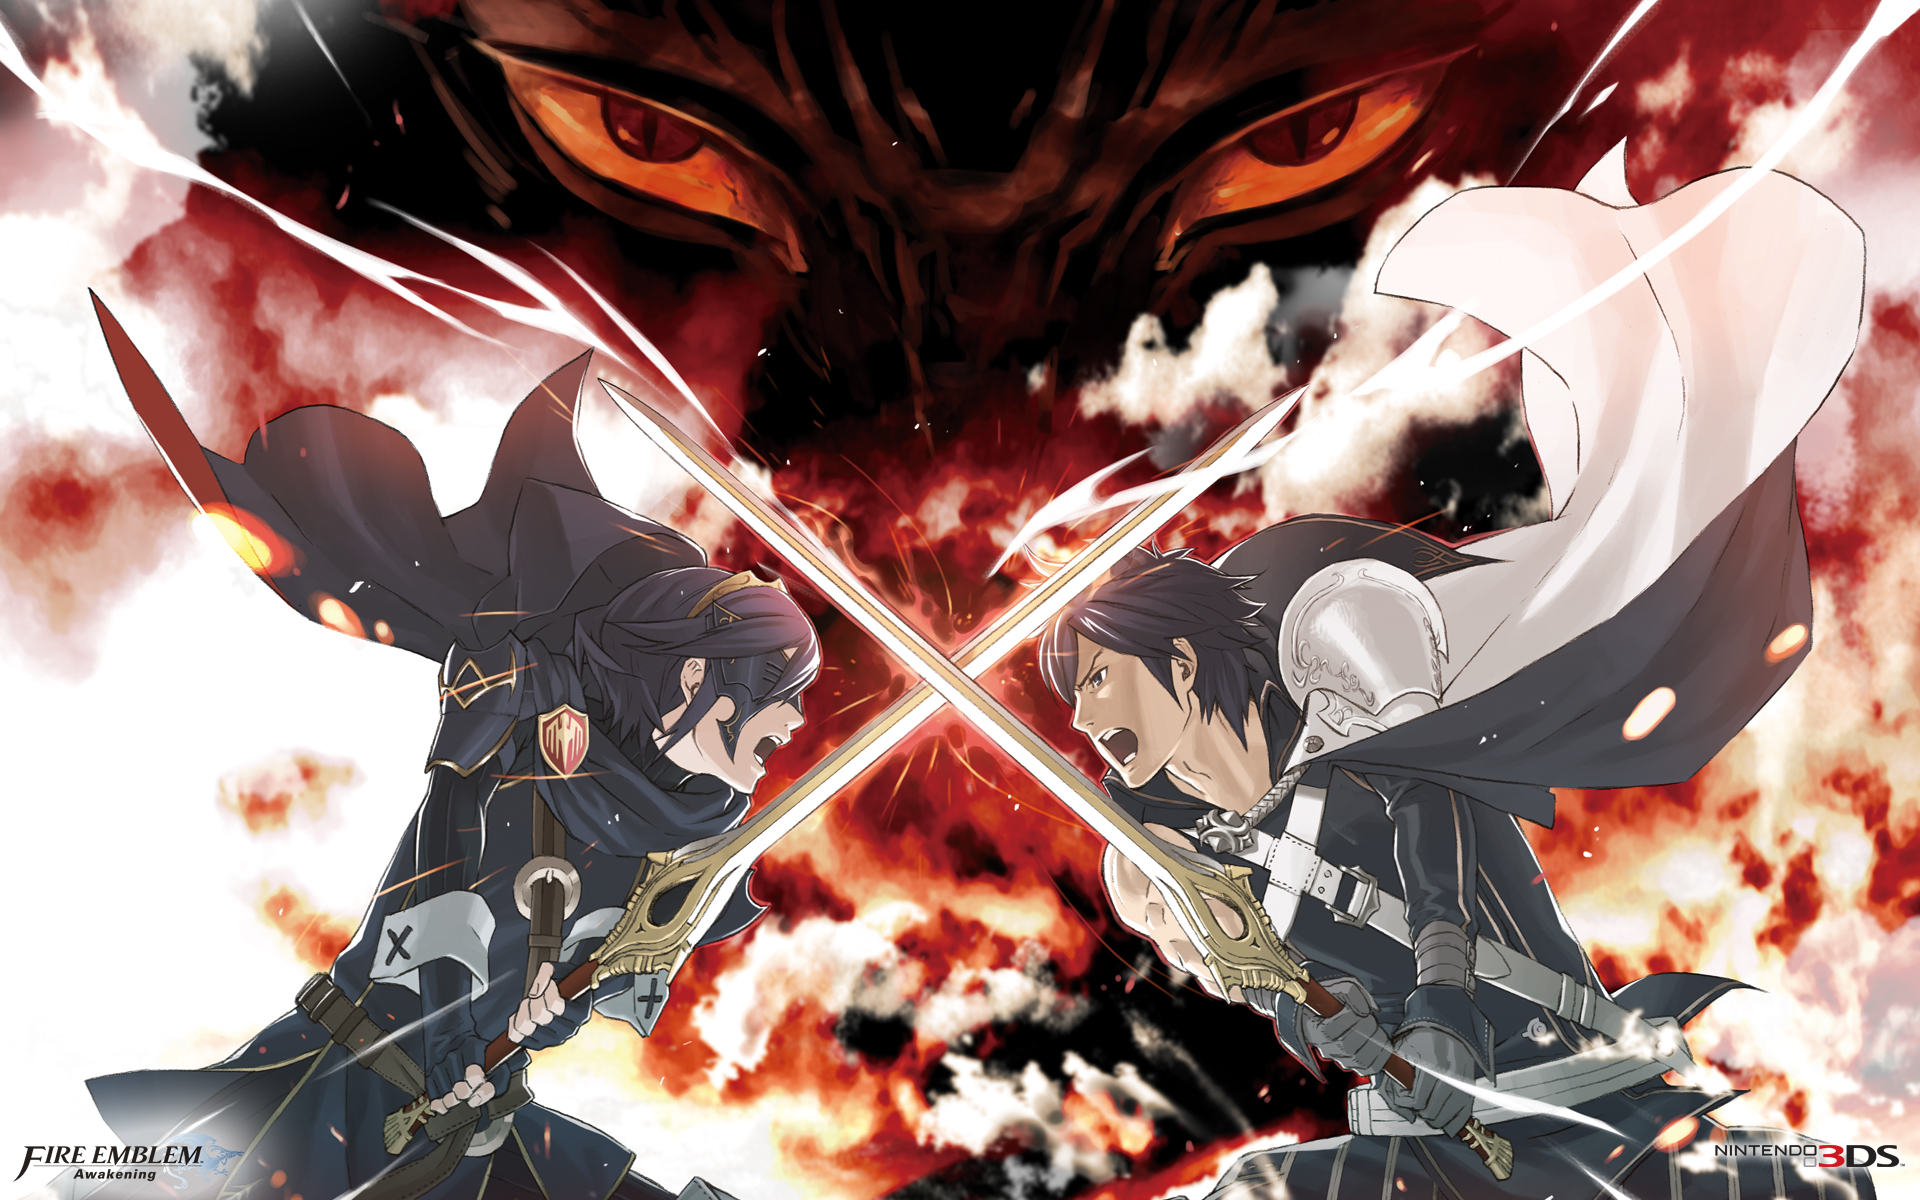 Fire_Emblem_Awakening_Cover